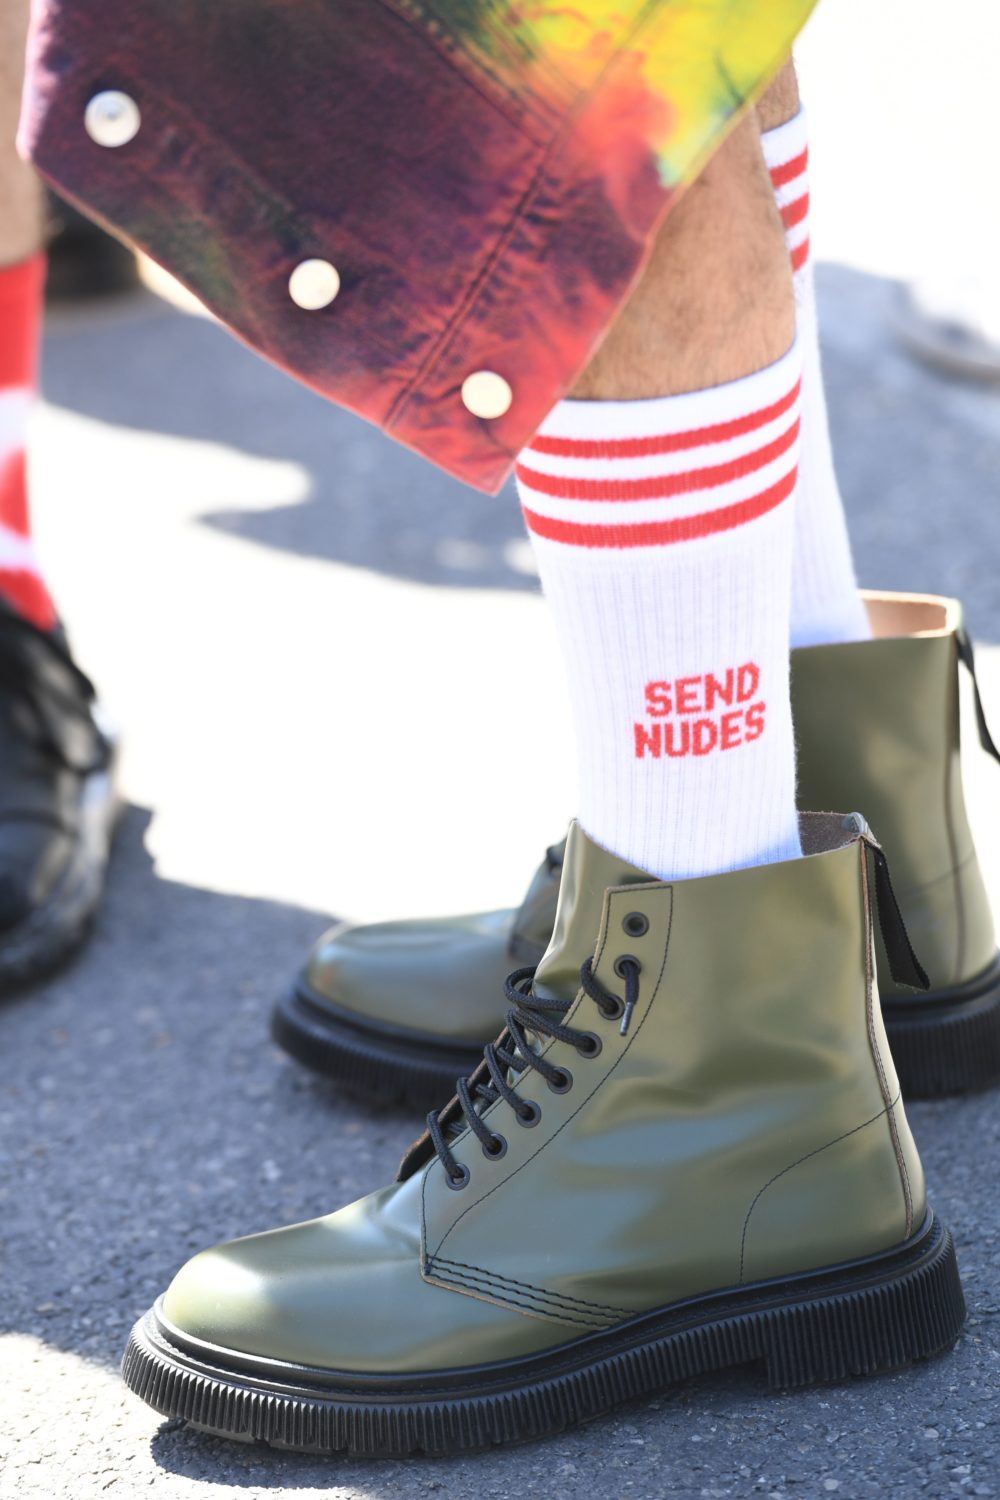 Men on the scene for Pitti Immagine Uomo trotted out a range of shoe styles bringing fashion to the street. This gentleman paired suggestive socks with olive combat-style boots.